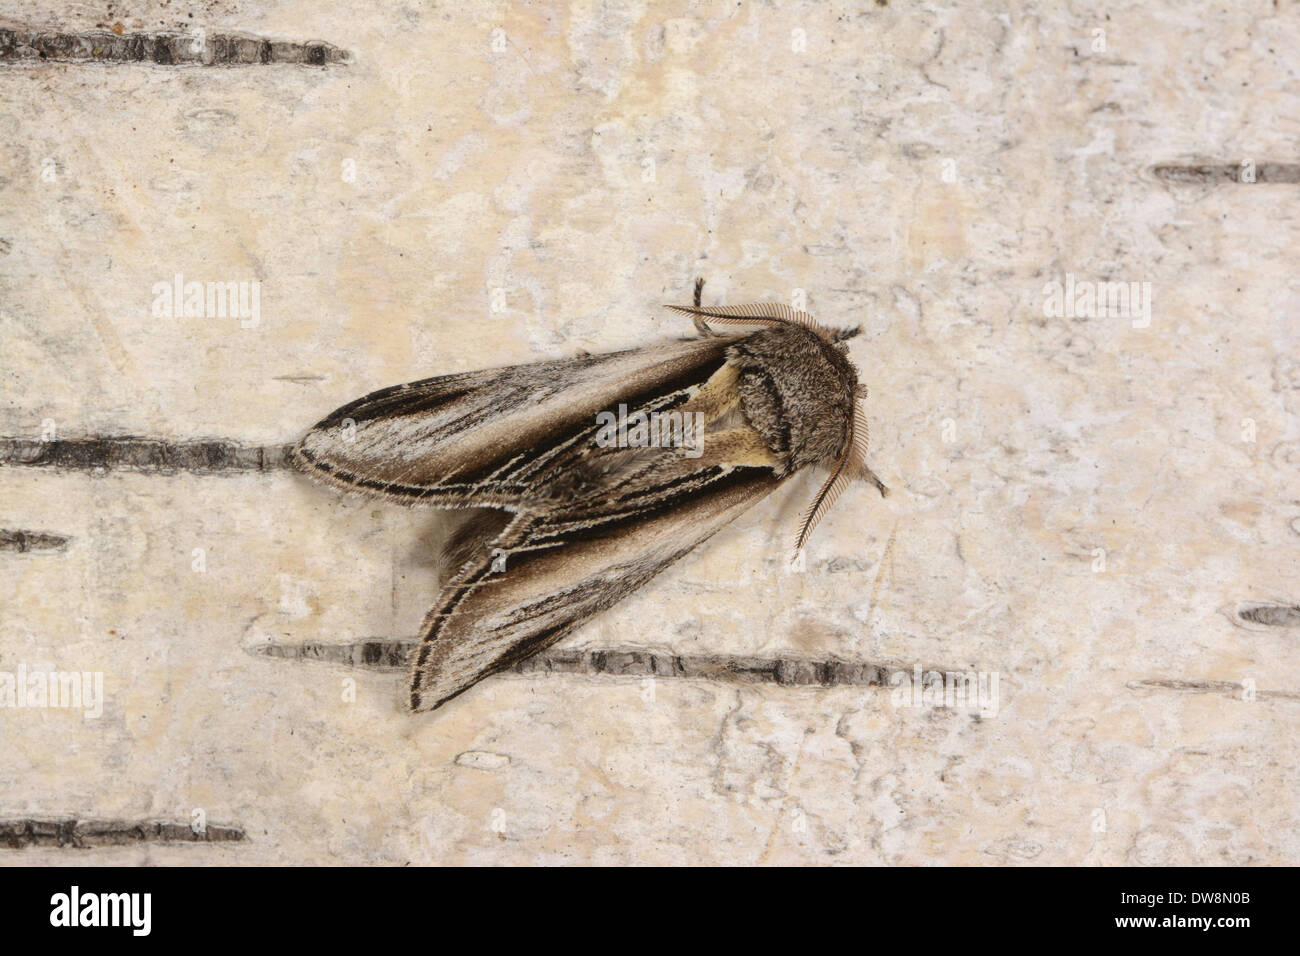 Swallow Prominent (Pheosia tremula) adult male resting on birch bark Oxfordshire England August - Stock Image